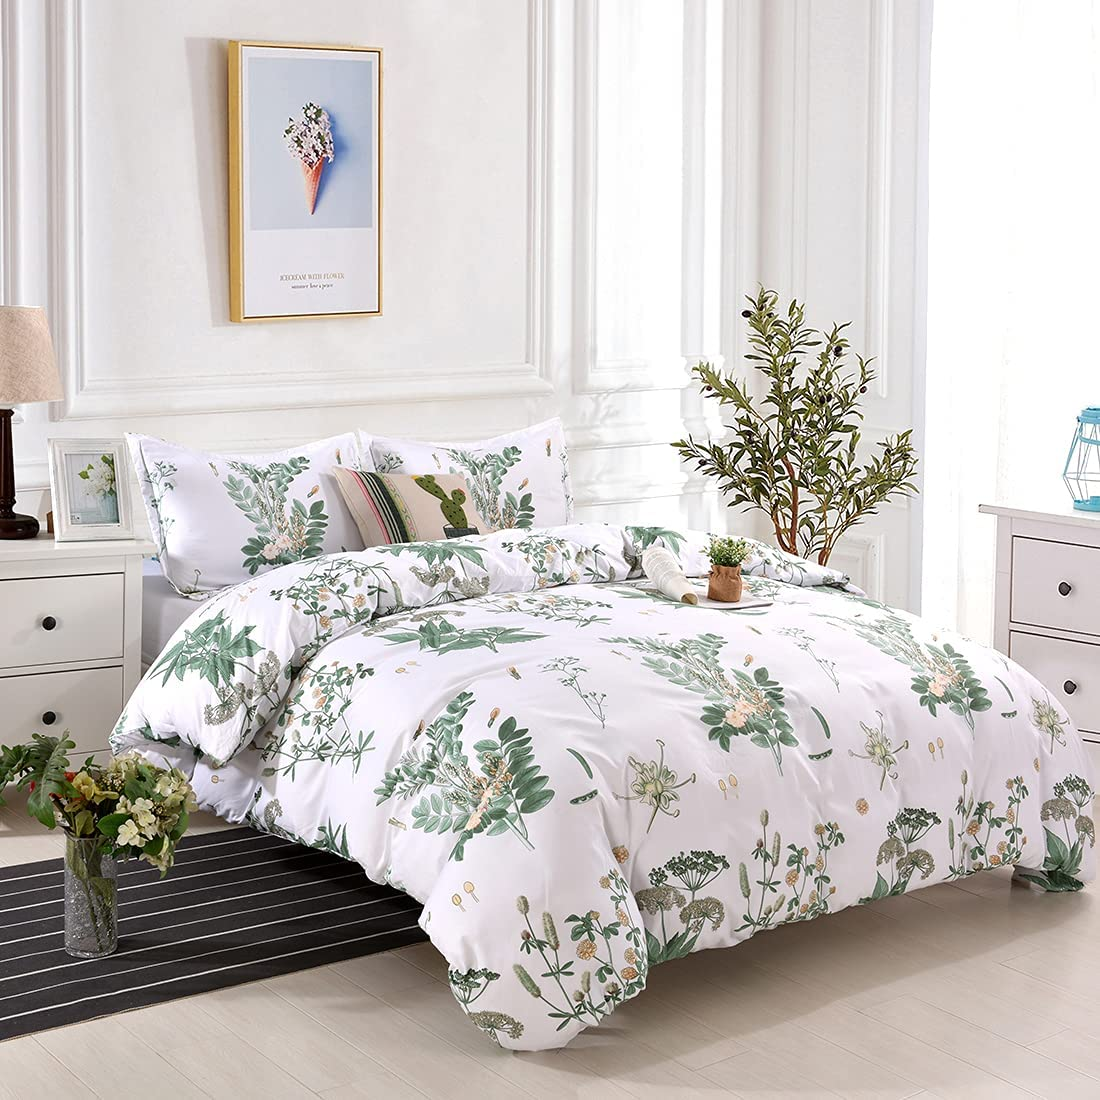 YMY Lightweight Microfiber Bedding Duvet Weekly update Max 81% OFF Floral Cover Print Set